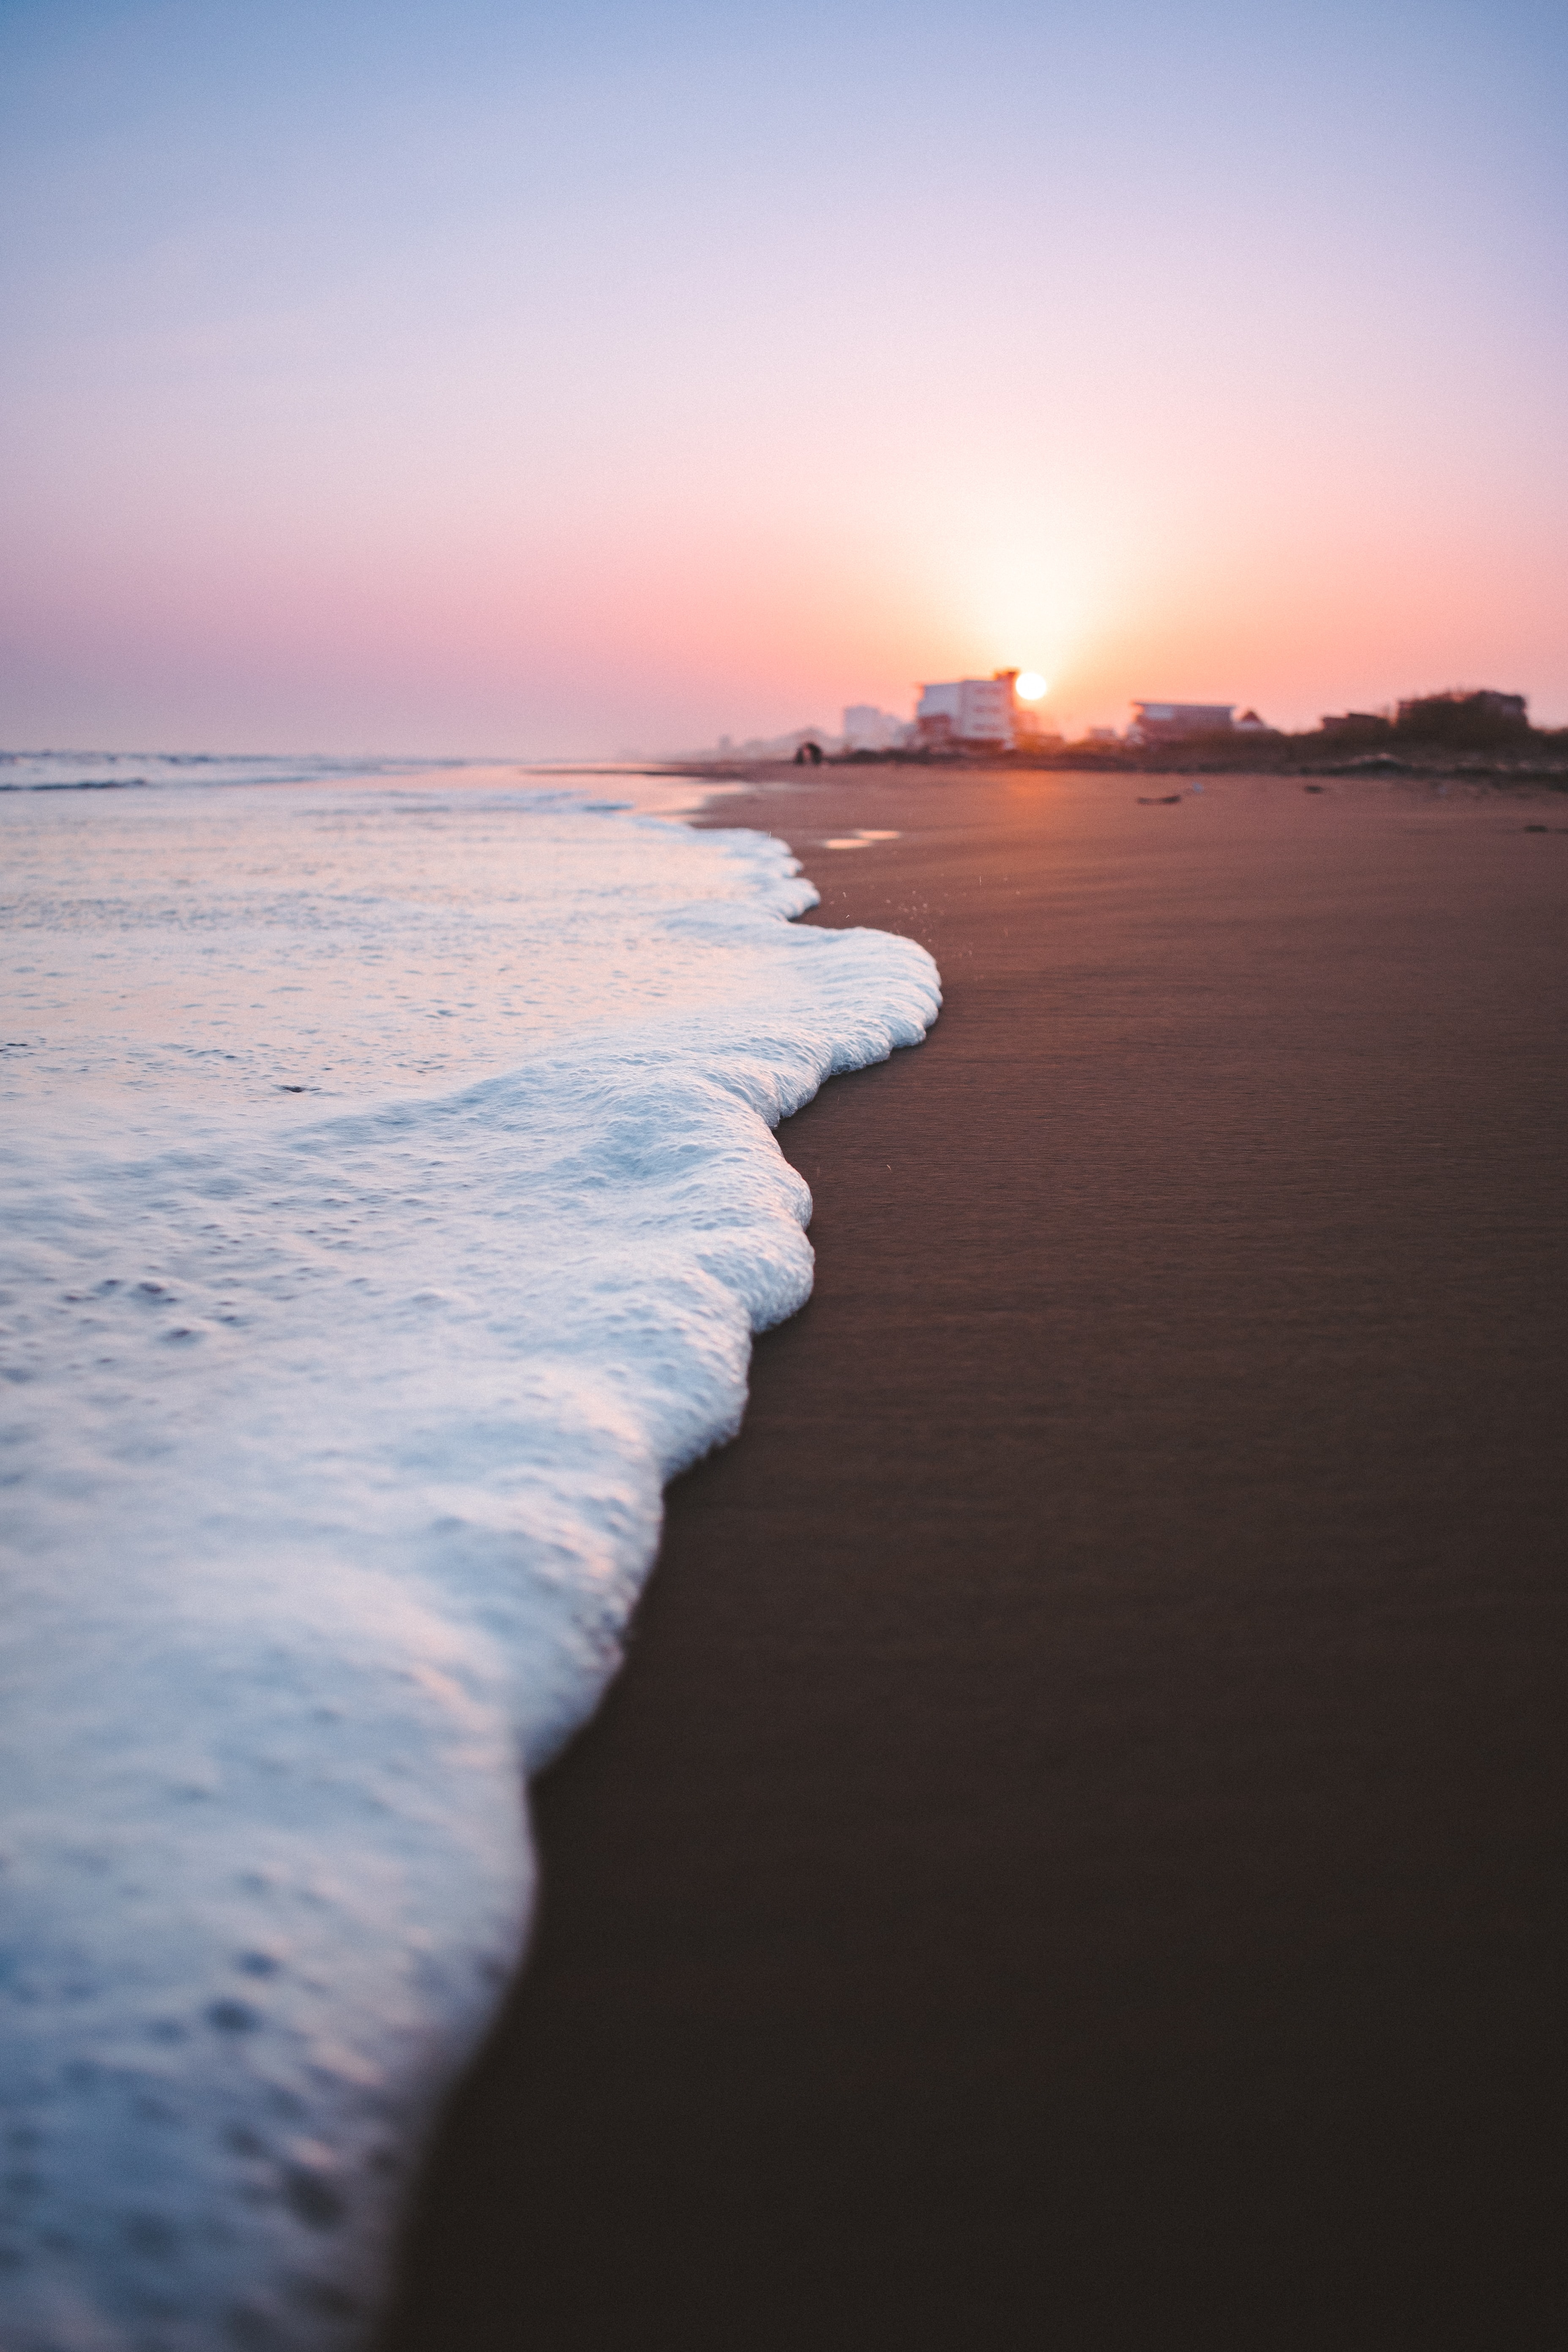 waves on brown sand closeup photography during sunset